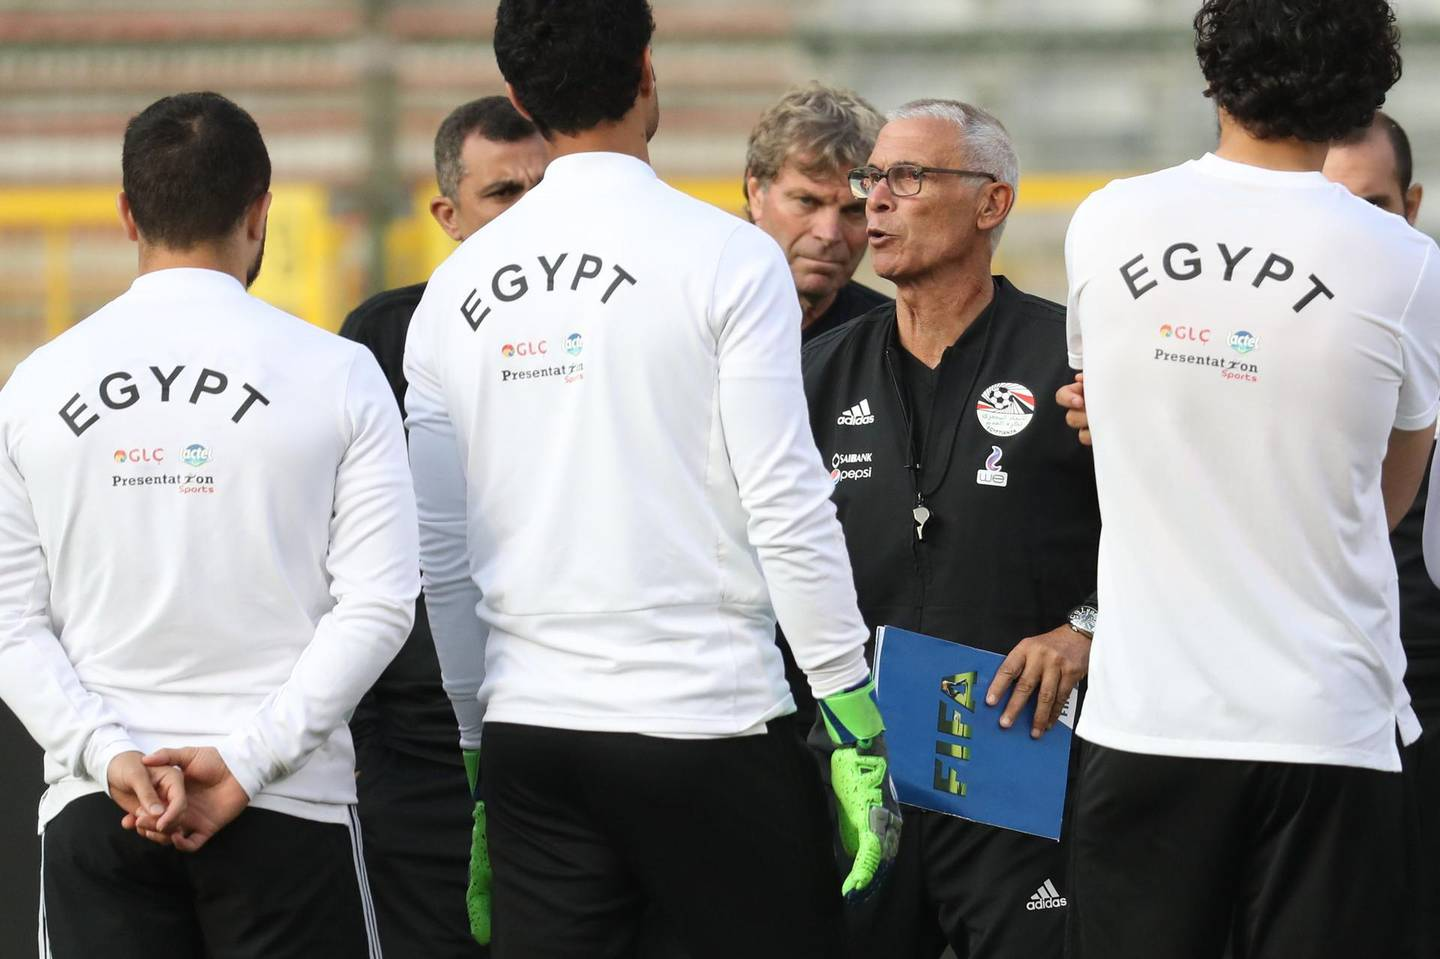 Egypt's head coach Hector Cuper speaks to Egyptian national football players during a training session on June 5, 2018, in Brussels on the eve of the International friendly football match between Egypt and Belgium prior to the Russia World Cup 2018.  Belgium OUT  / AFP / BELGA / VIRGINIE LEFOUR